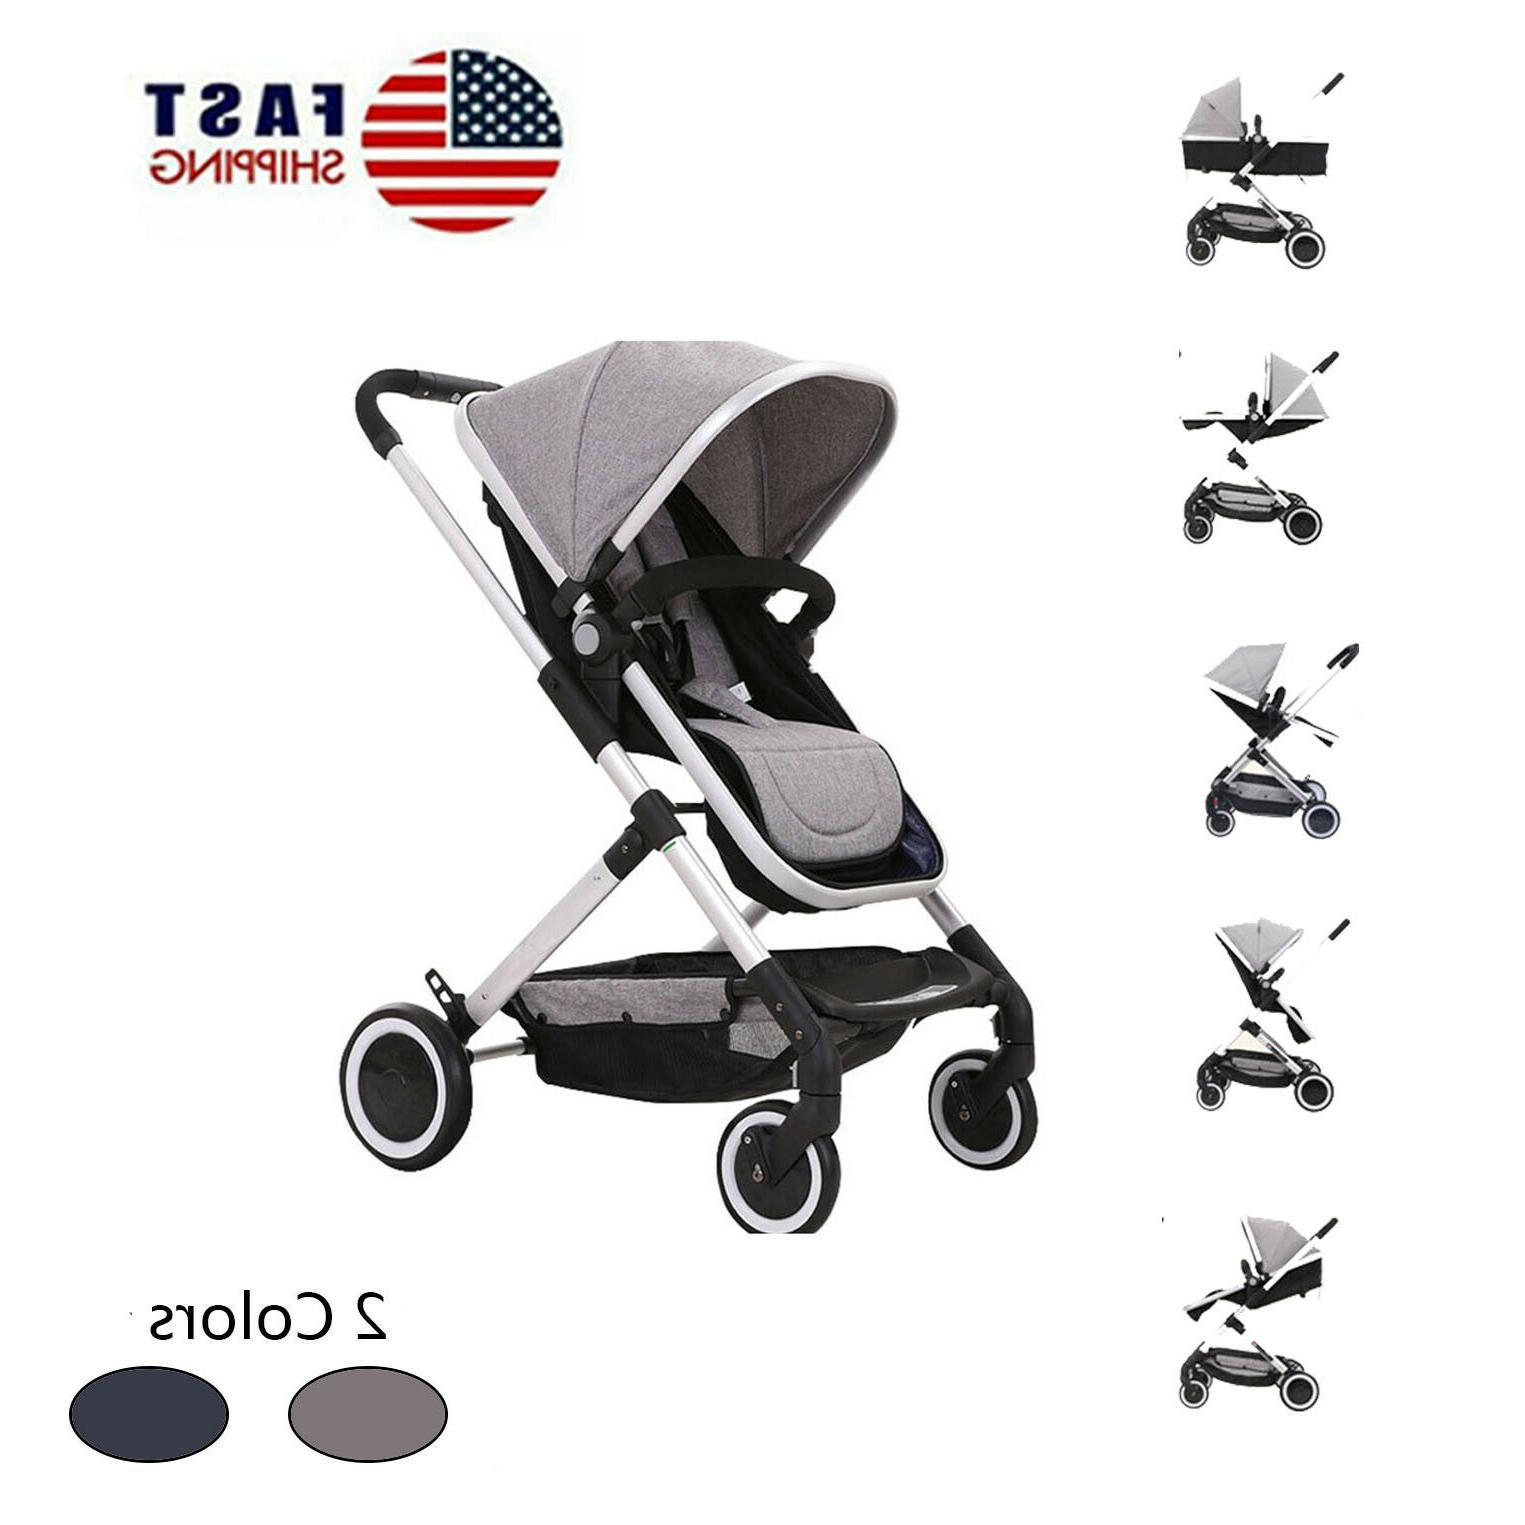 lightwight foldle by kids travel stroller infant